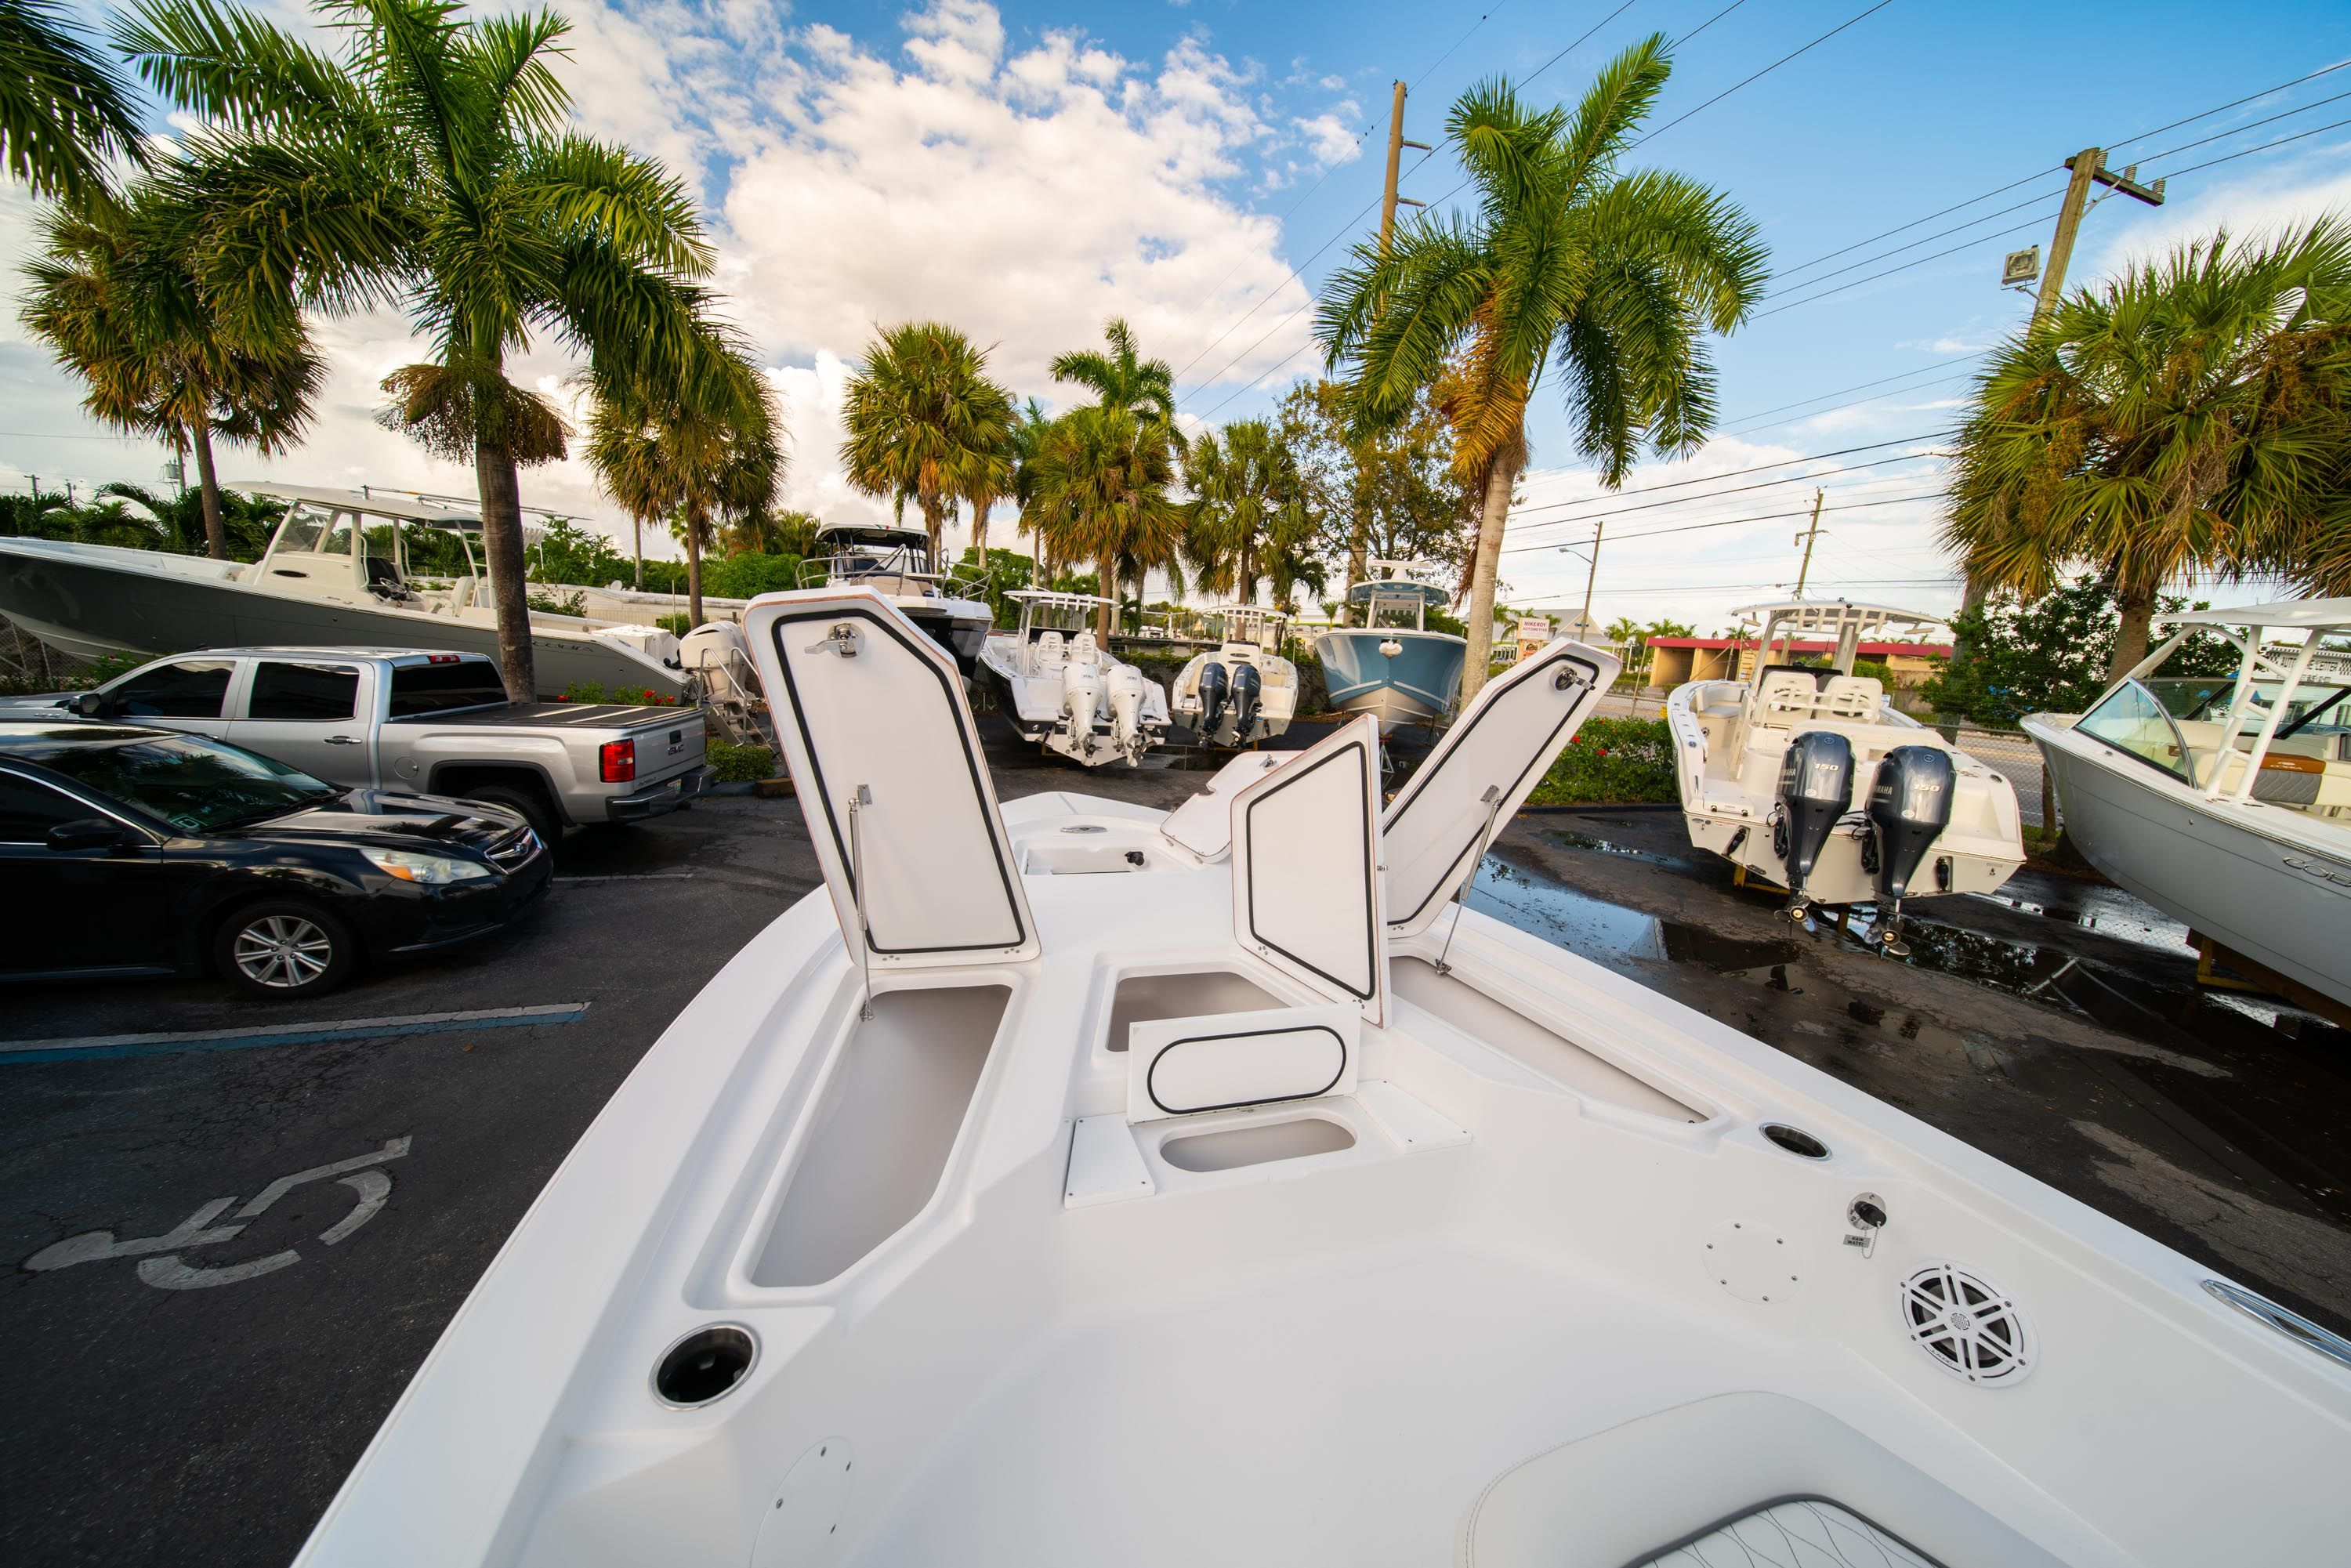 Thumbnail 30 for New 2020 Sportsman Tournament 214 Bay Boat boat for sale in West Palm Beach, FL